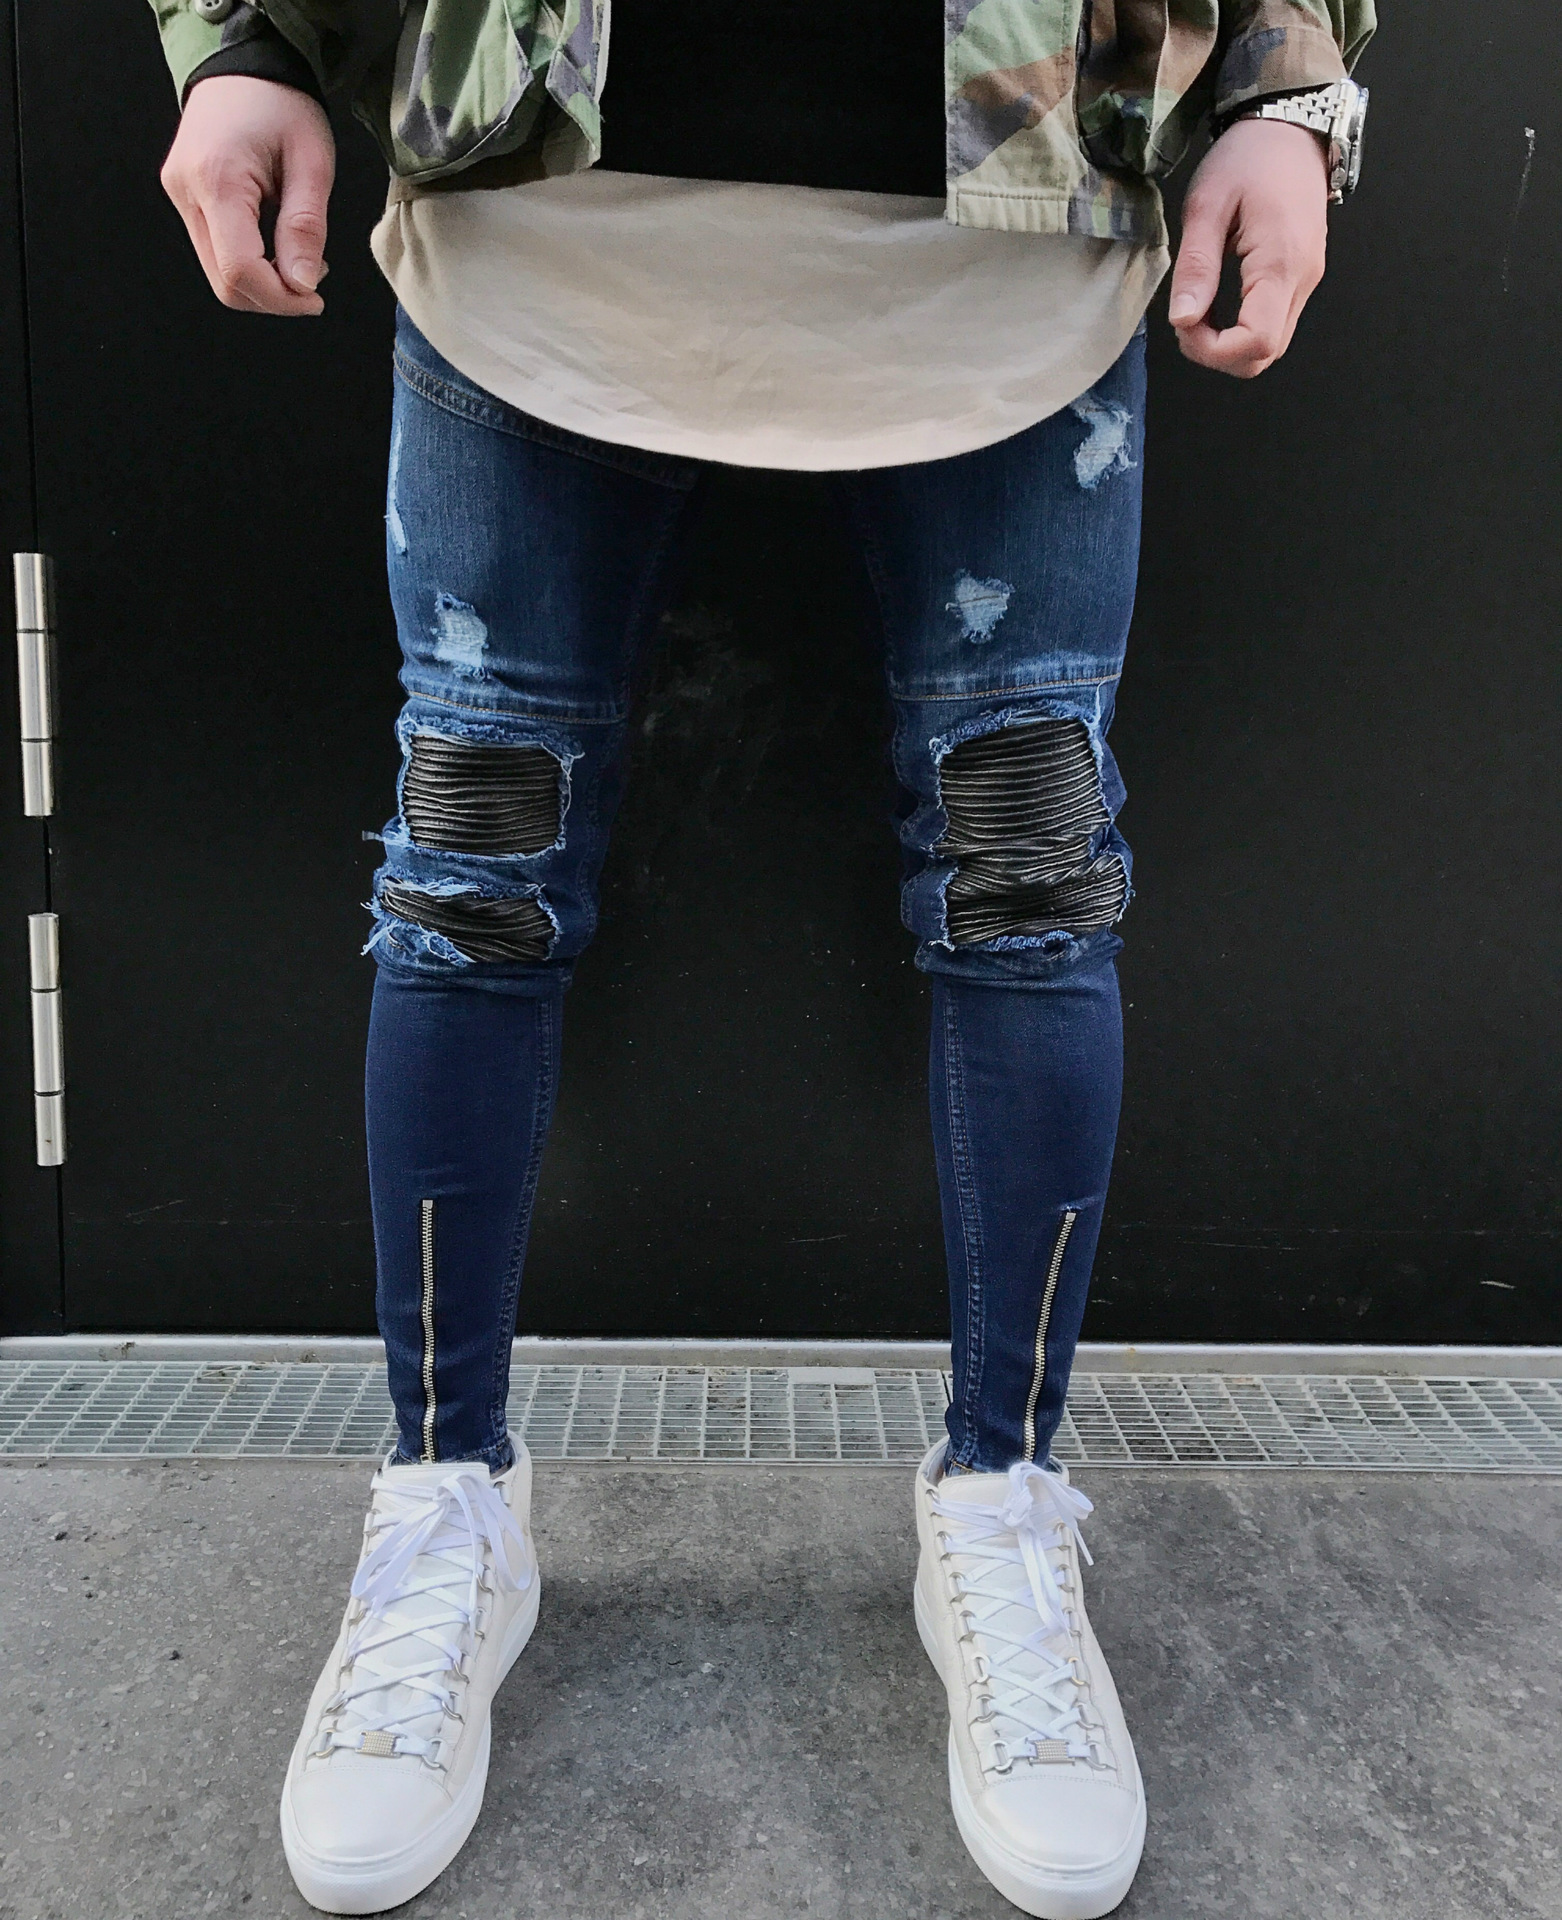 2018 Jeans Europe And America MEN'S Jeans Blue Fight Skin With Holes MEN'S Pants Trend Skinny Pants